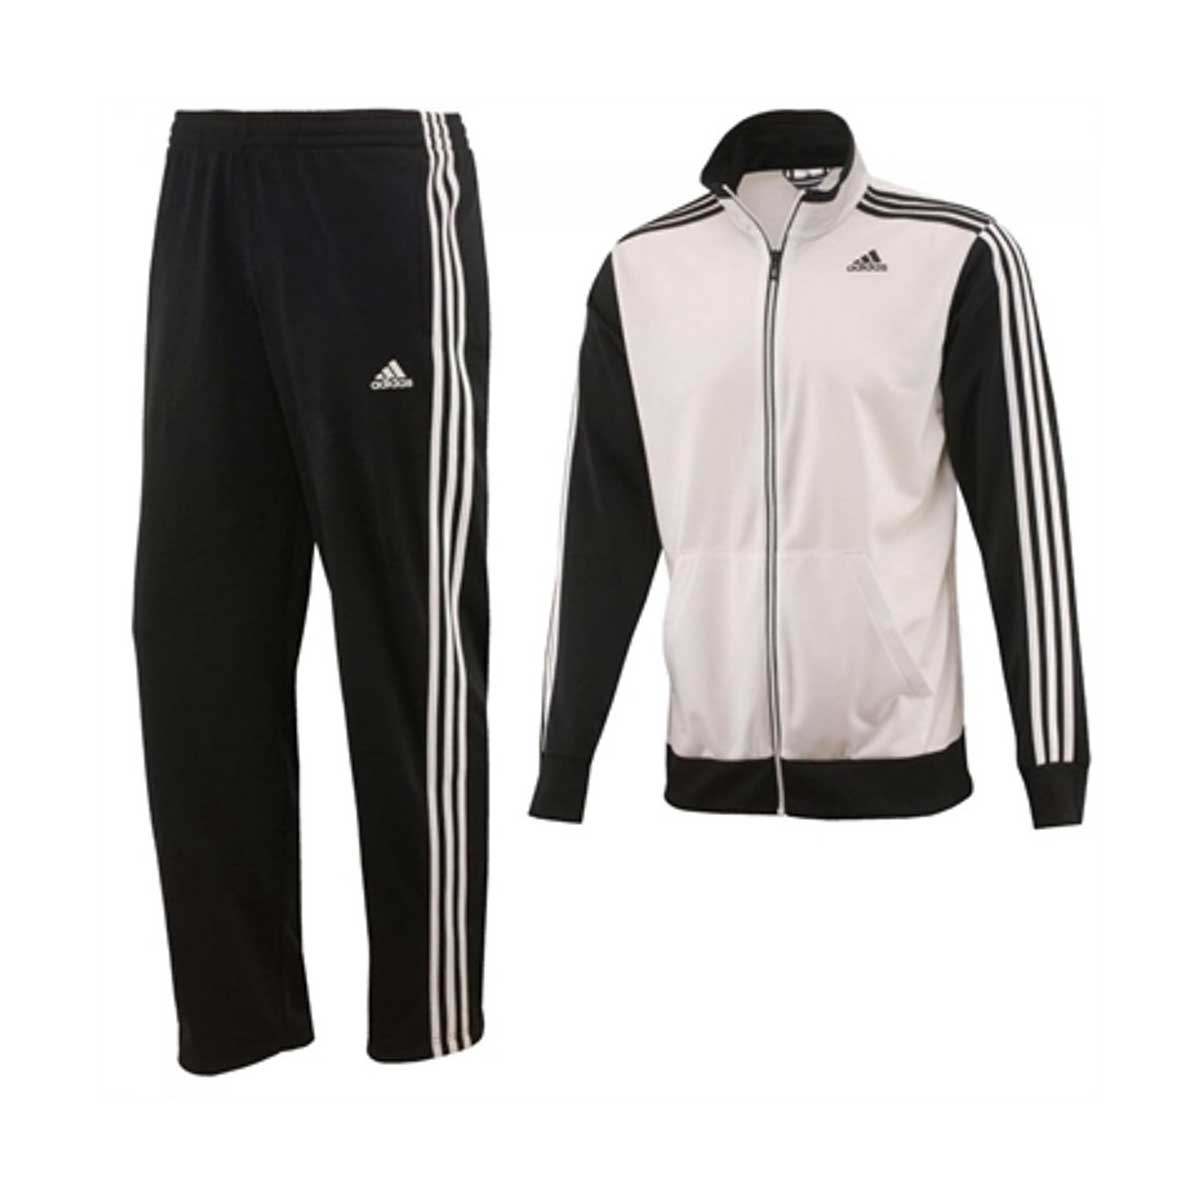 49404d33b4b7 ... black adidas sweat suit